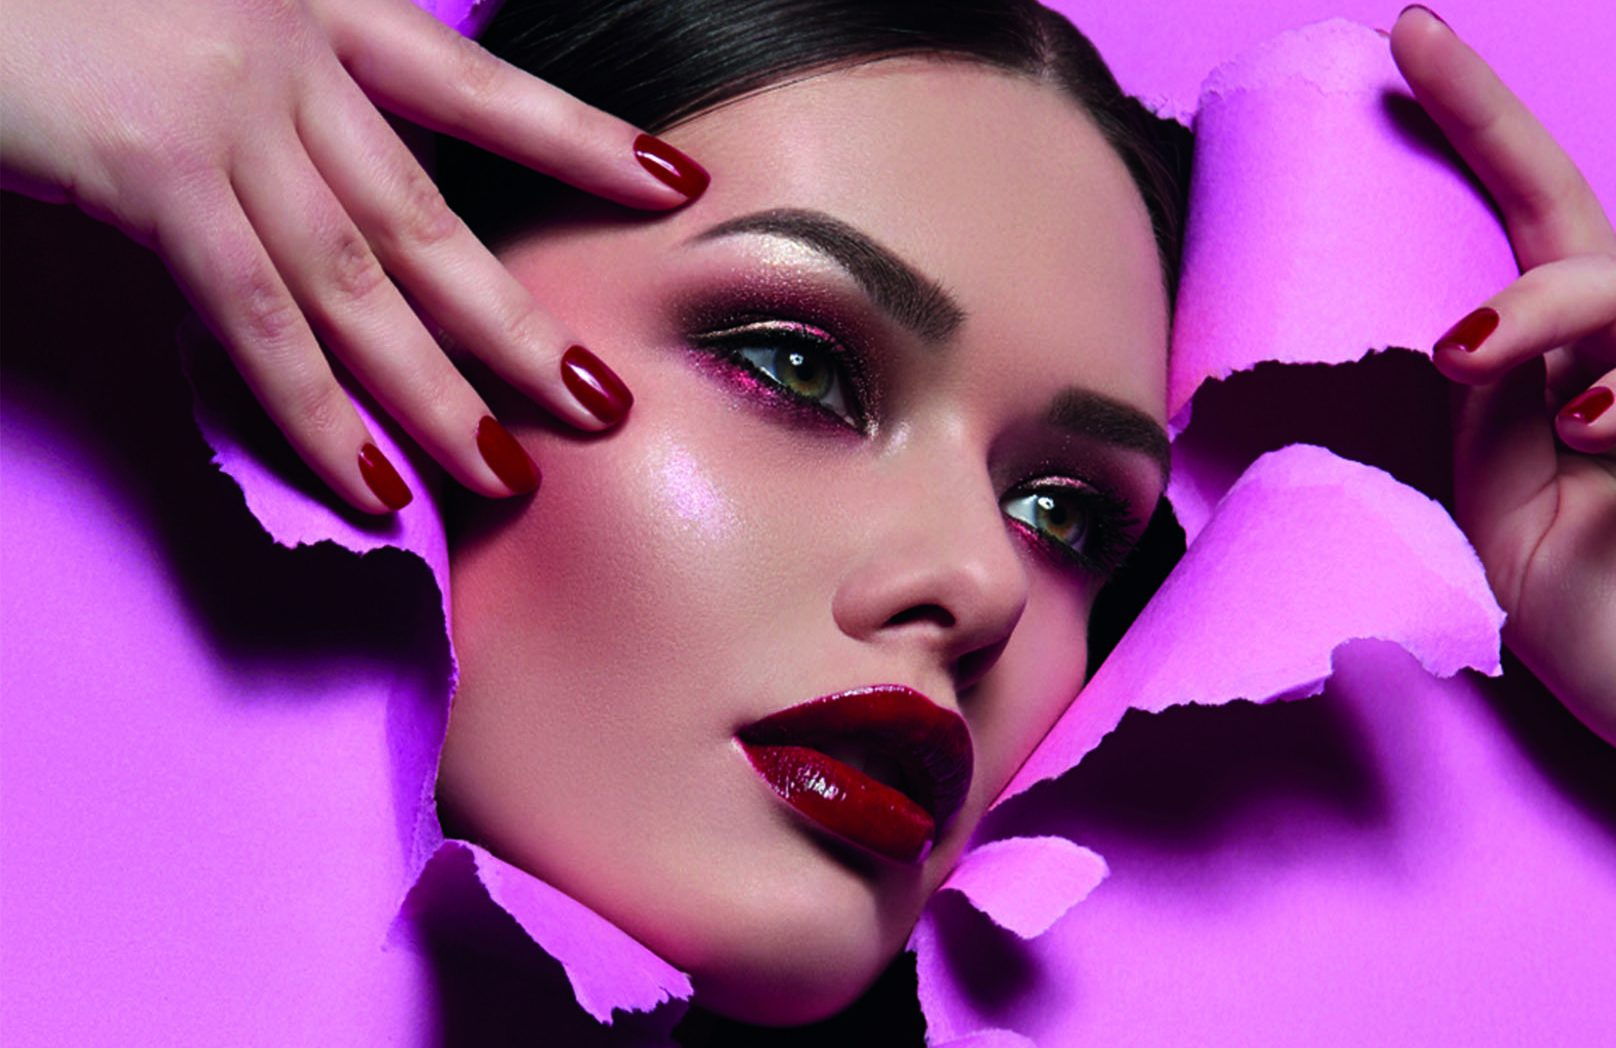 Spa treatment of the week - Lash & brow tint & Deluxe Manicure or Pedicure